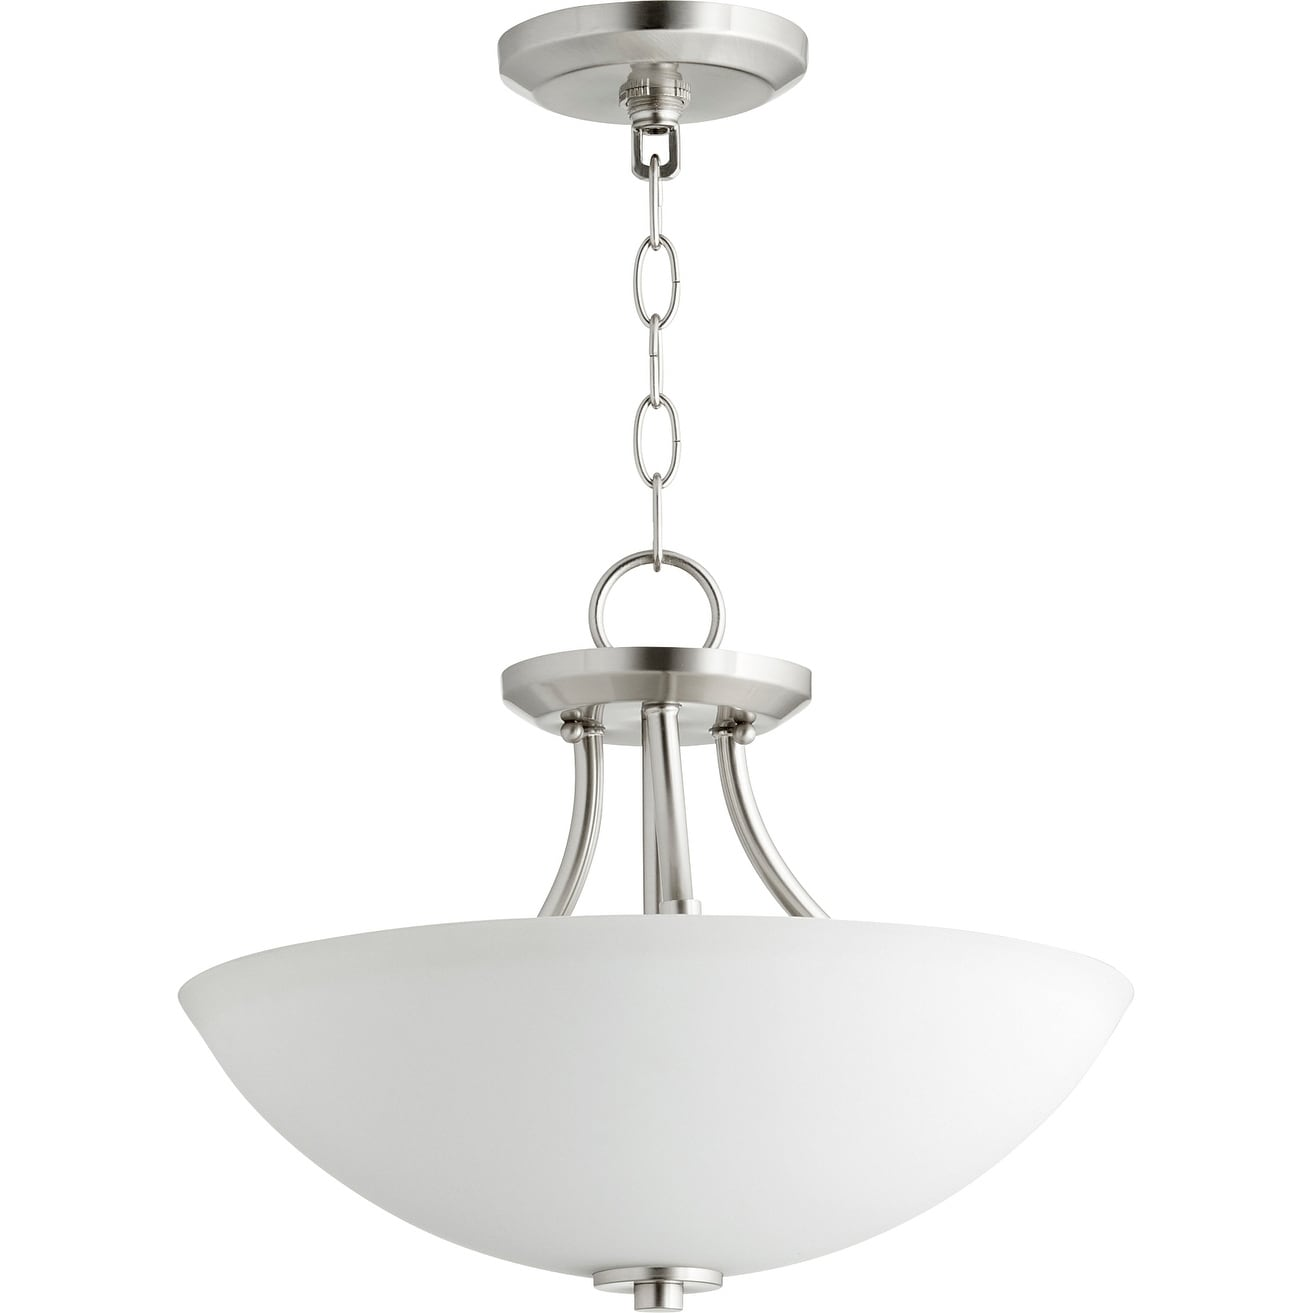 Shop quorum international barkley family dual mount ceiling fixture free shipping today overstock 21709273